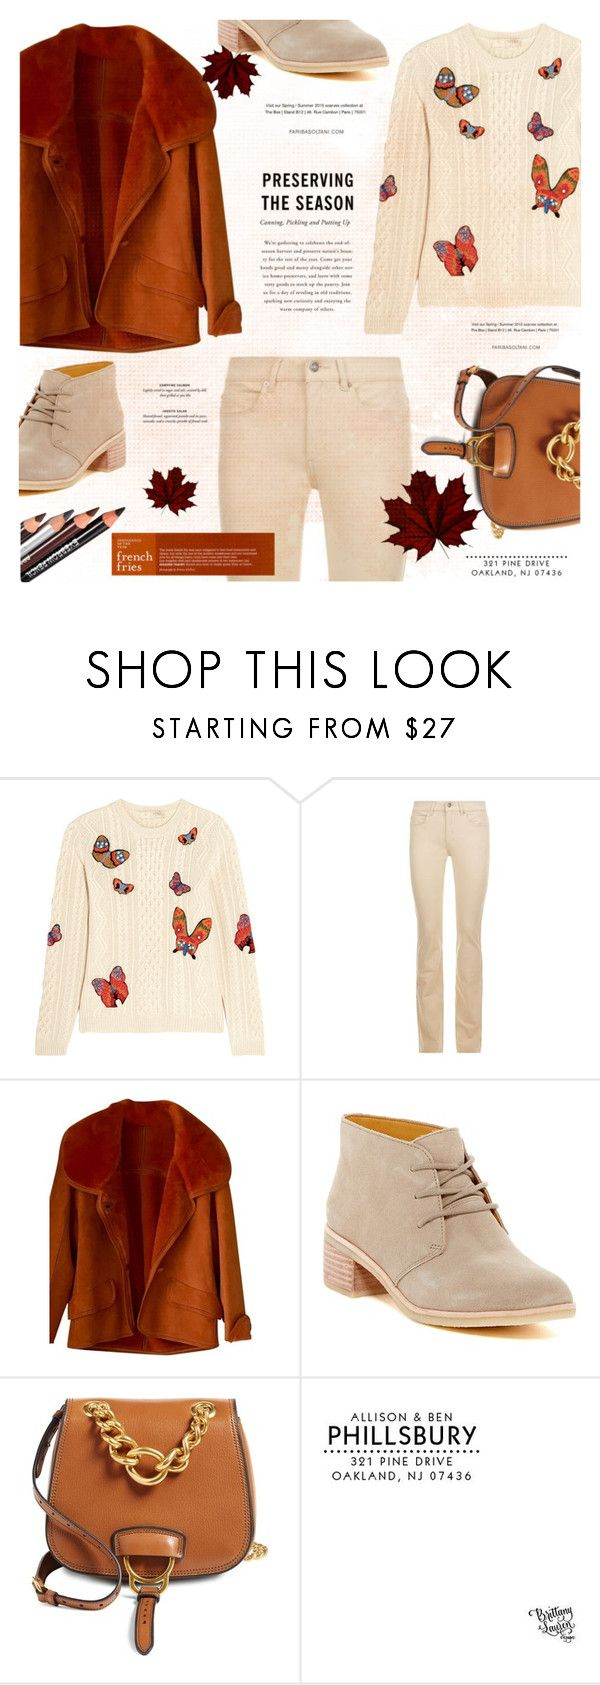 """*833*"" by monazor ❤ liked on Polyvore featuring Valentino, Escada Sport, Fendi, Clarks, Miu Miu, womenfashion, falloutfit and Fall2016"